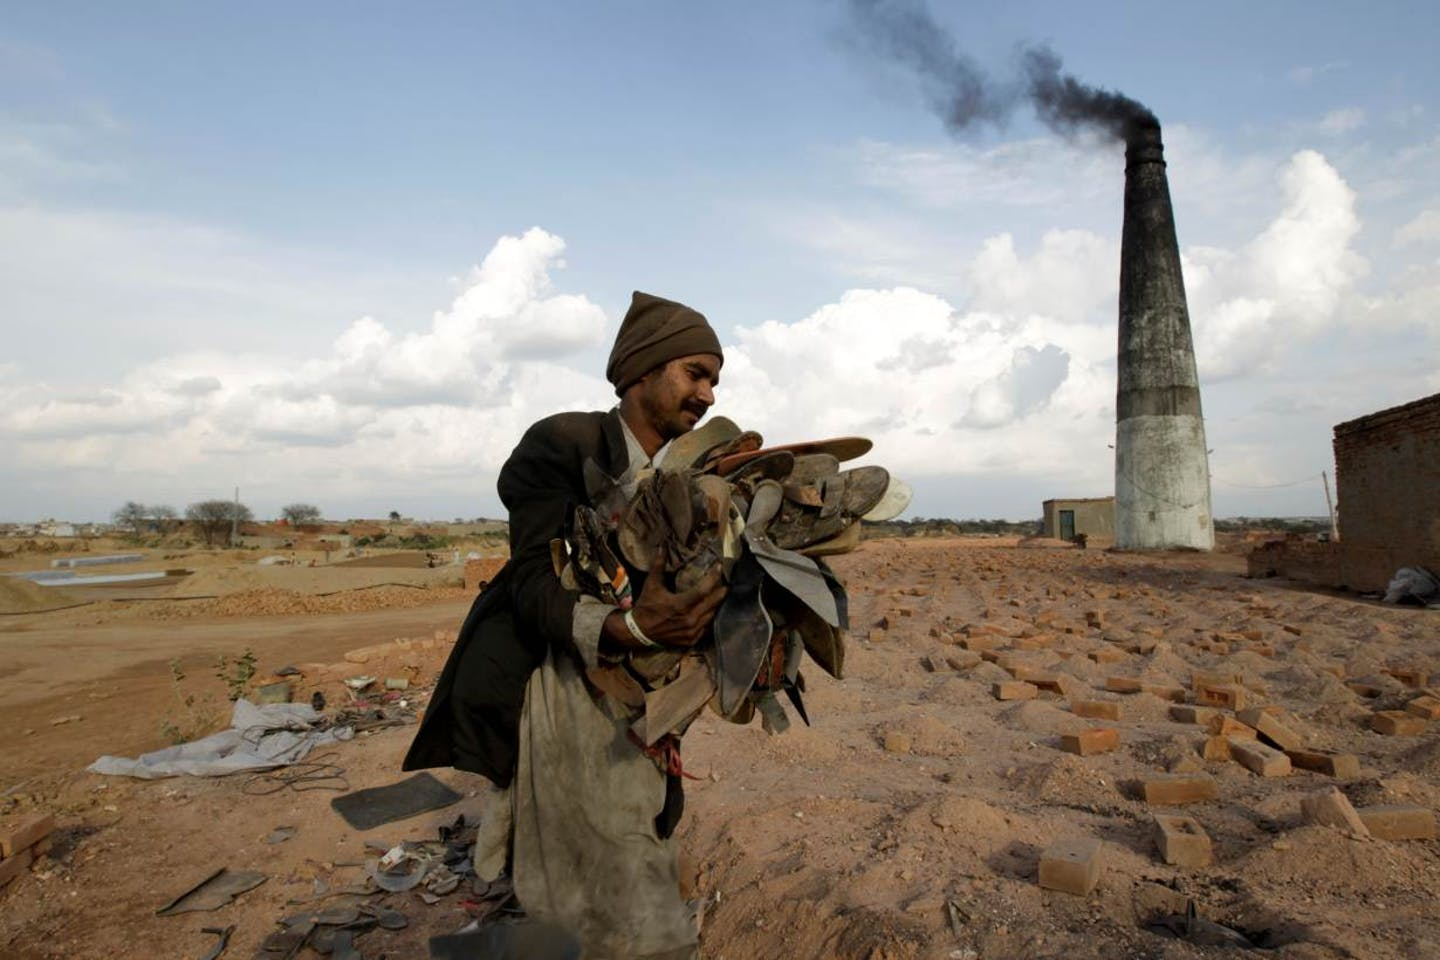 worker burns slipper at brick kiln factory in Pakistan